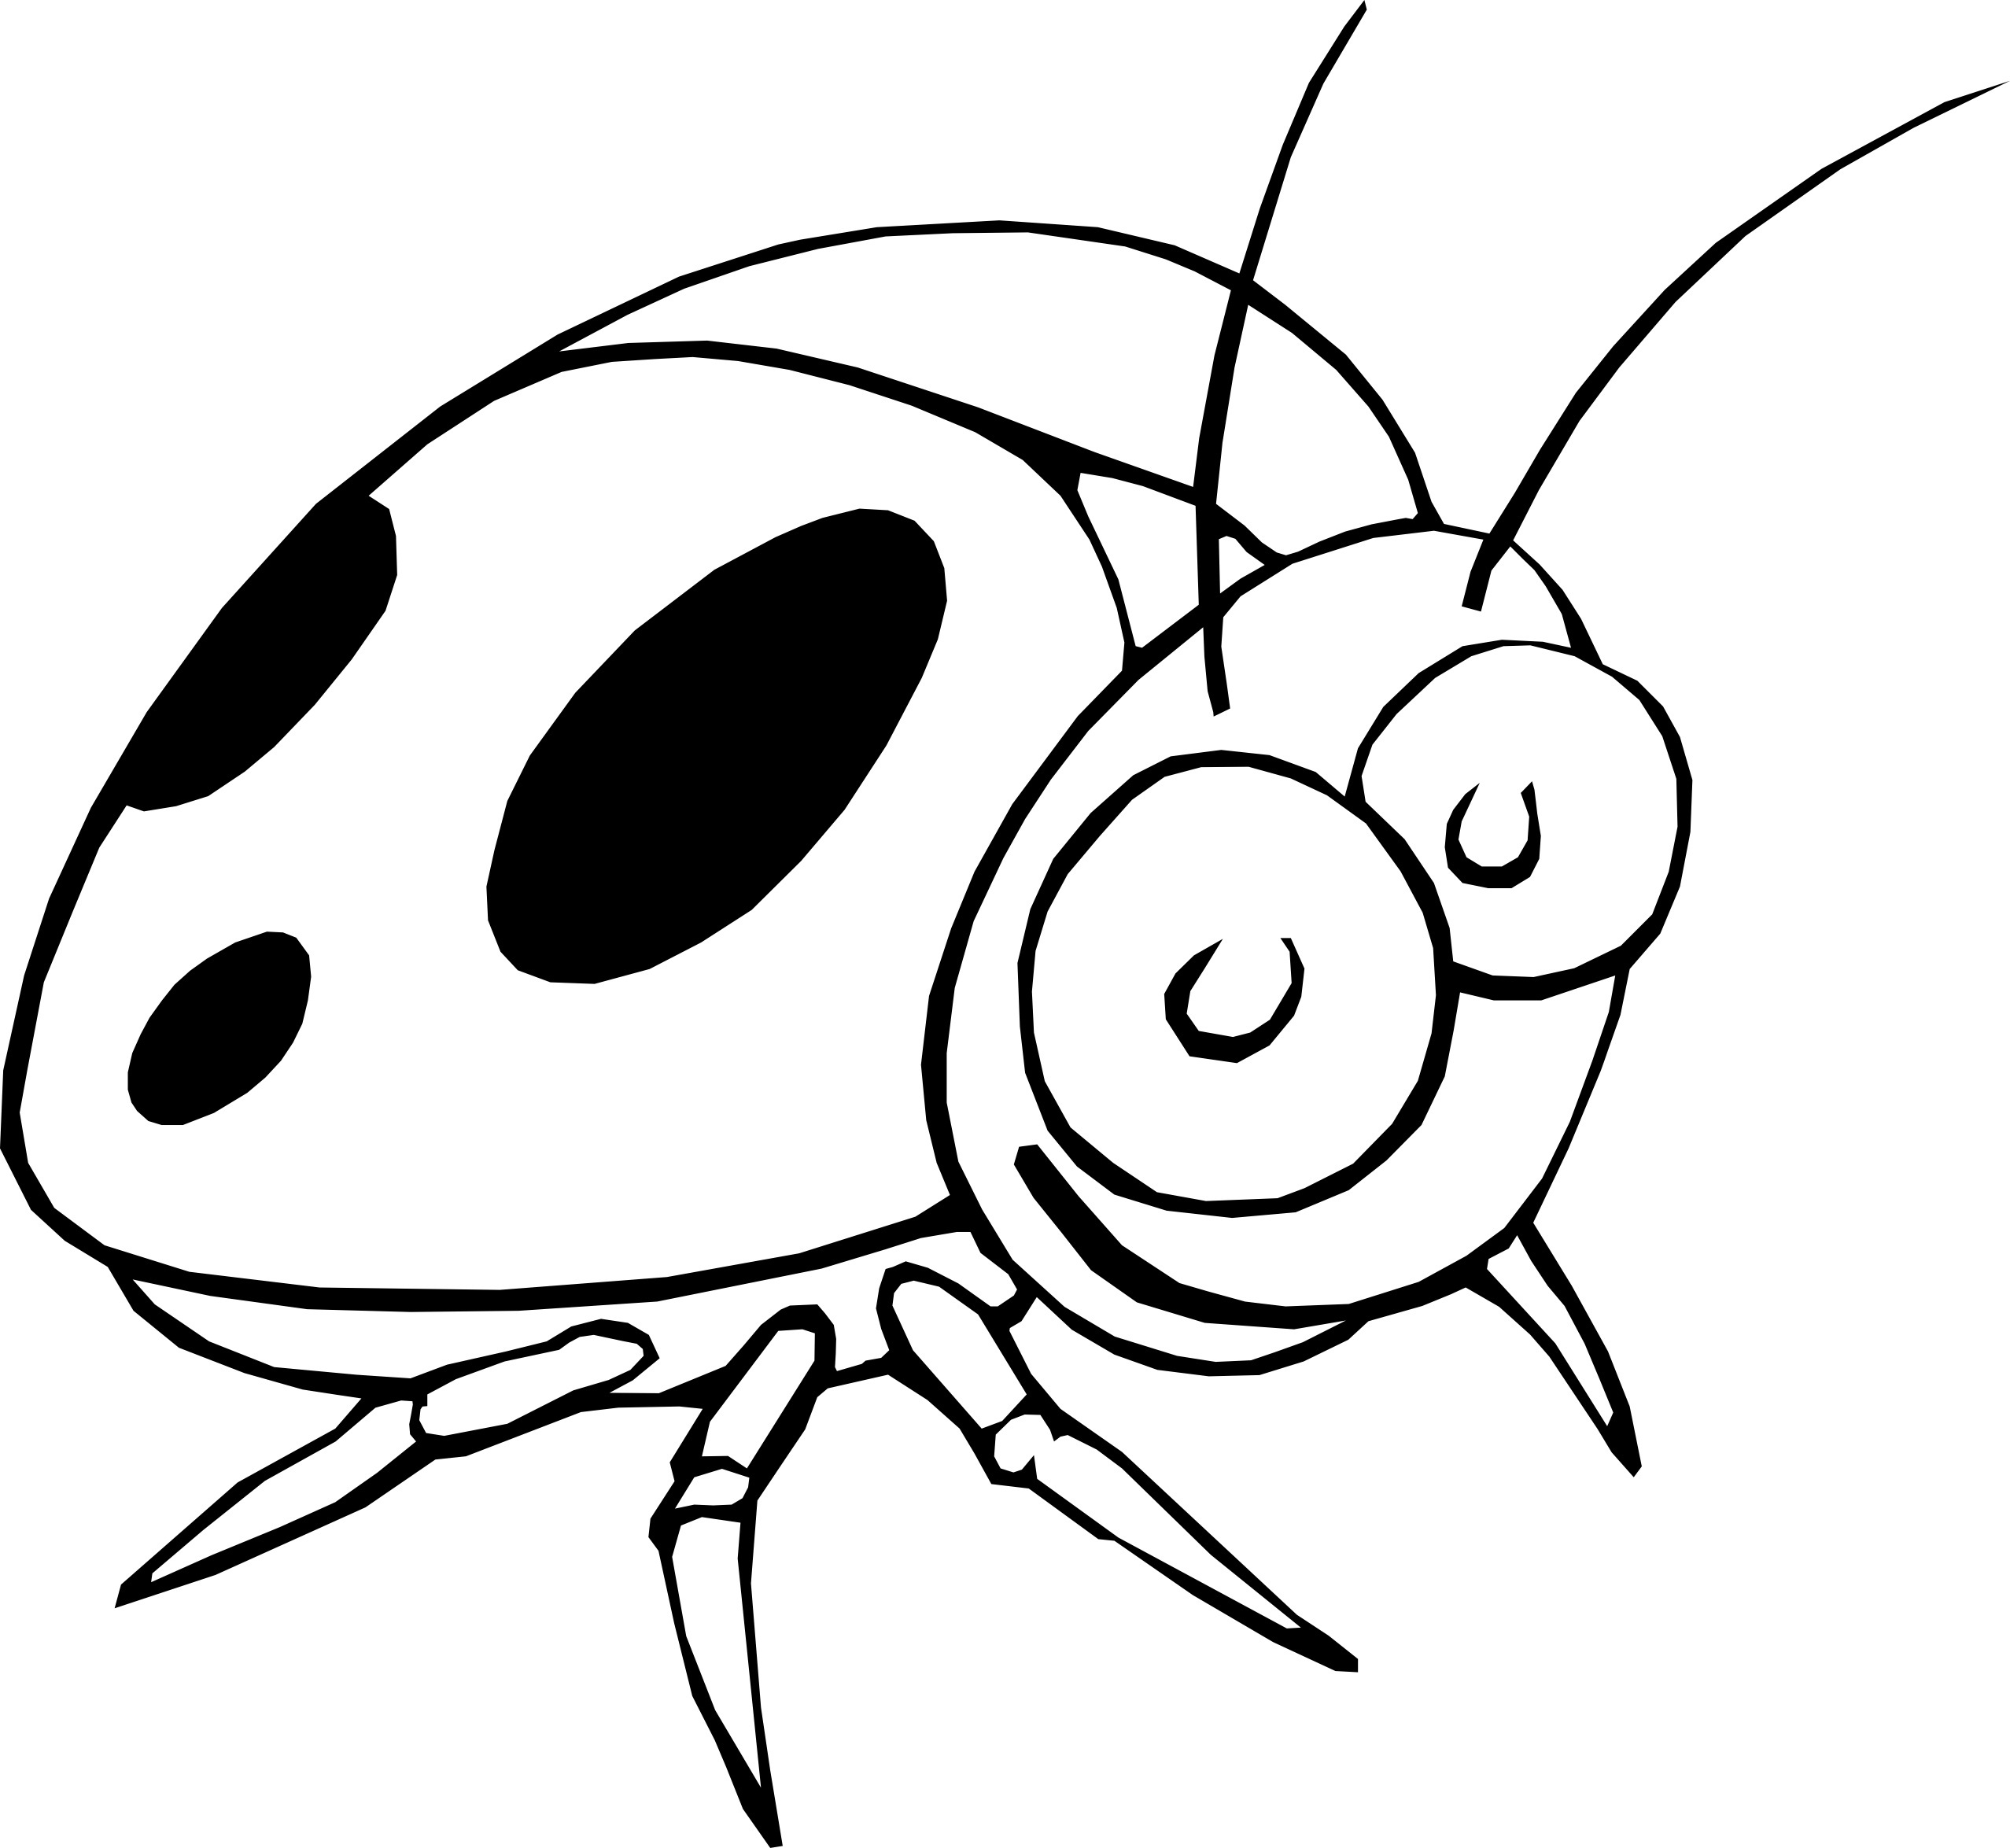 Coloring pages of ladybugs for kids - Printable Ladybug Coloring Pages Me